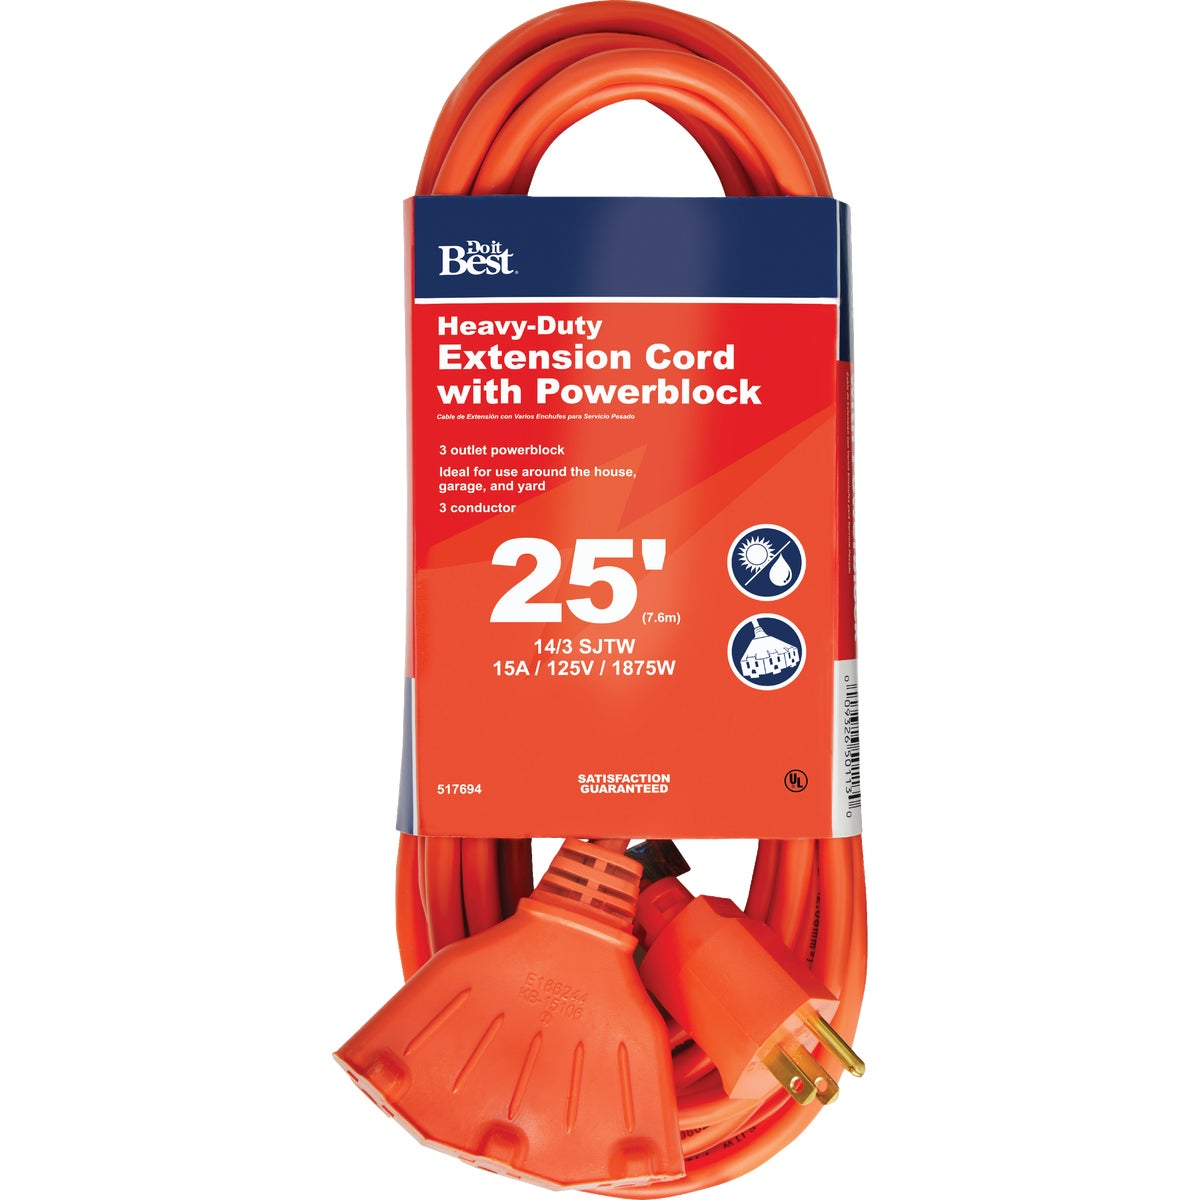 25' 14/3 TRIPLE TAP CORD - 550825 by Coleman Cable Import